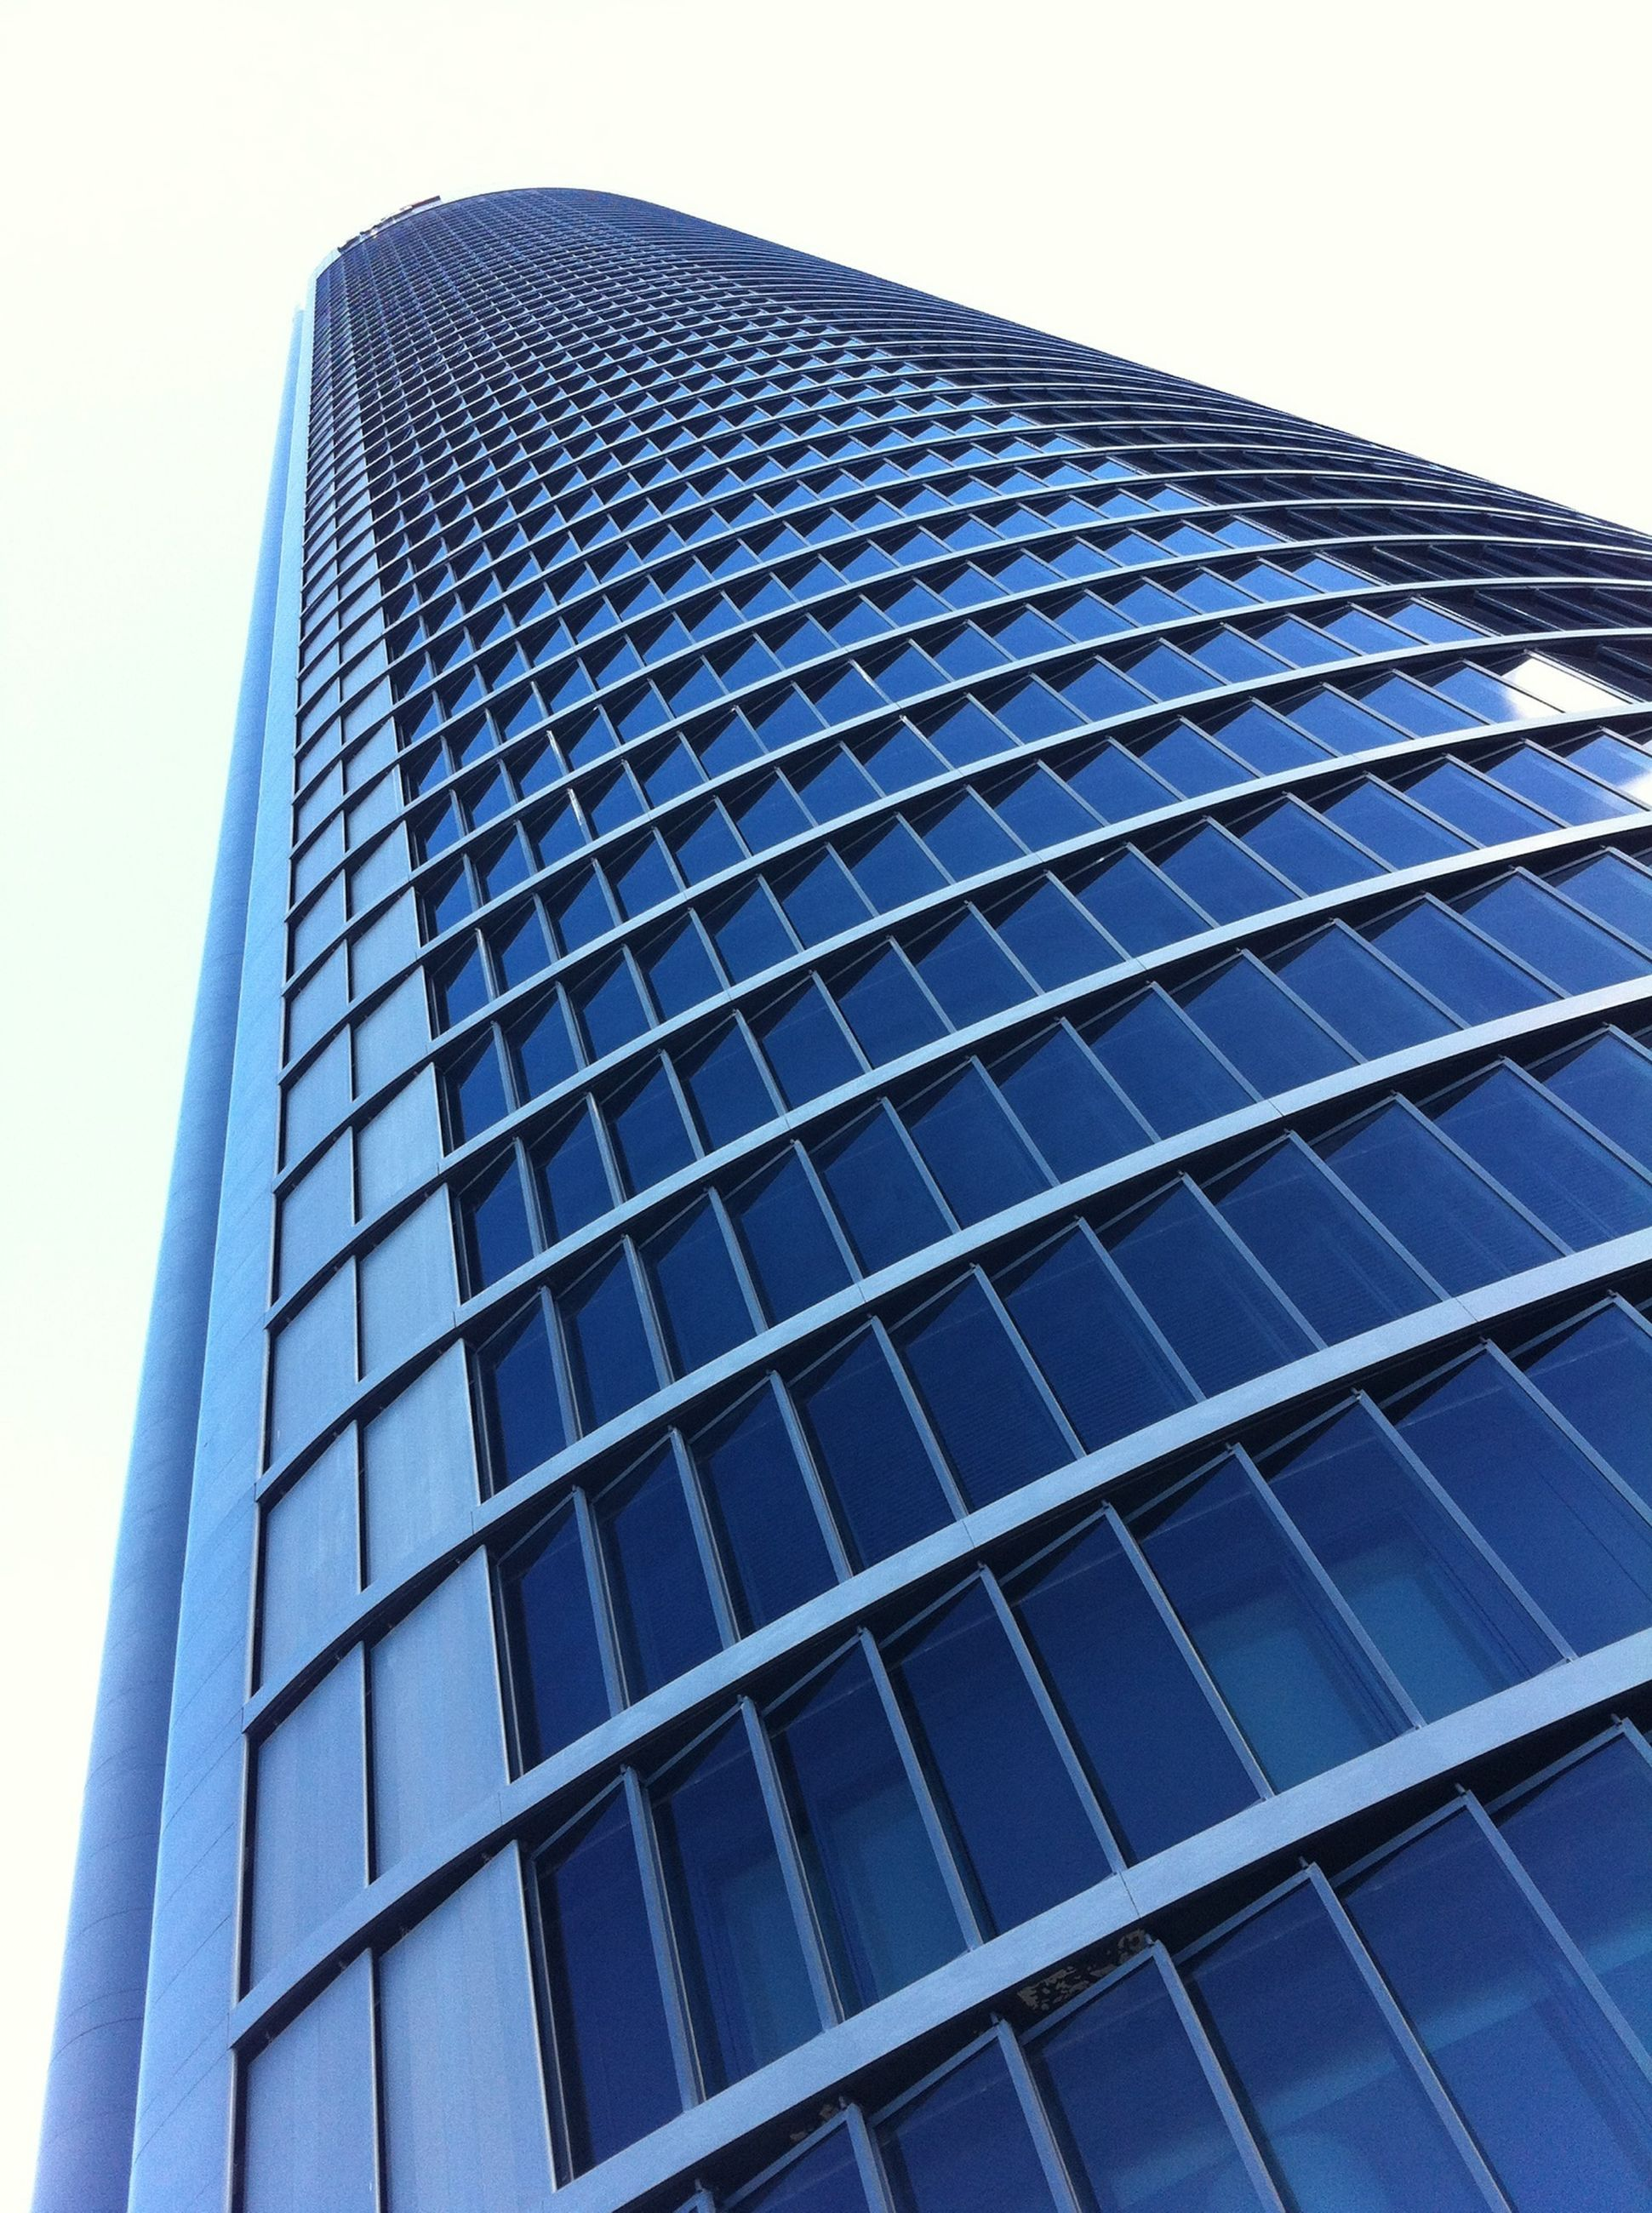 architecture, low angle view, building exterior, built structure, modern, office building, skyscraper, tall - high, city, glass - material, tower, building, reflection, clear sky, sky, day, tall, outdoors, no people, window